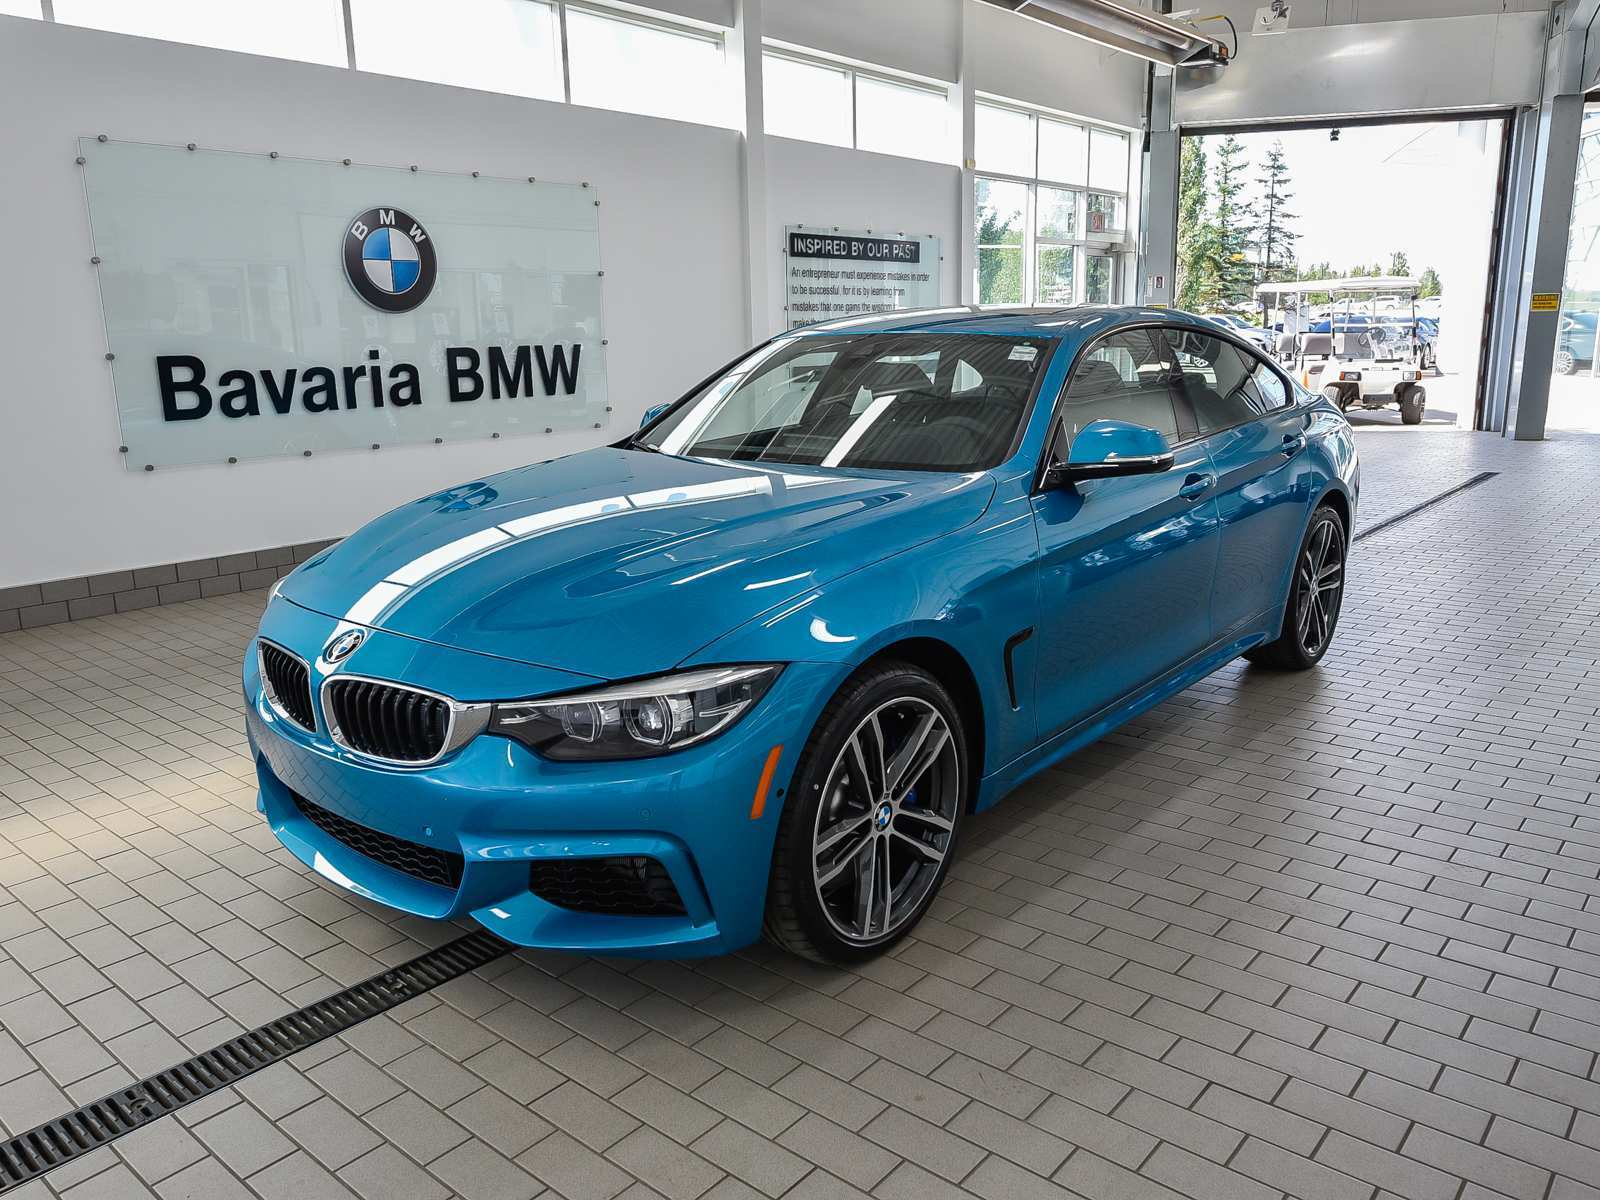 34 Gallery of 2019 Bmw 440I Xdrive Gran Coupe Configurations for 2019 Bmw 440I Xdrive Gran Coupe